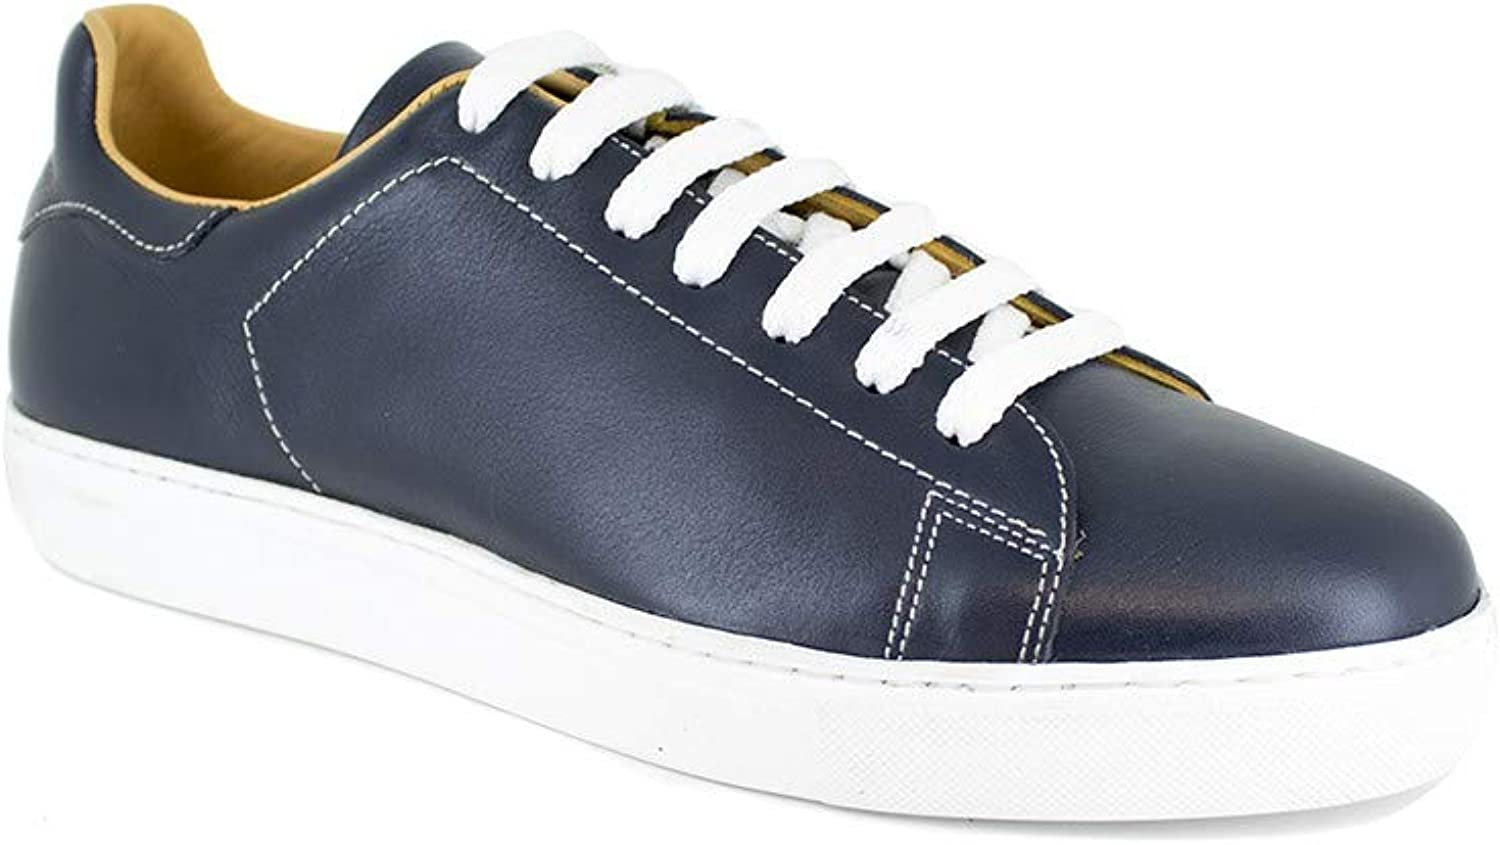 Peter Blade Sneaker Navy bluee Leather LE TOUQUET